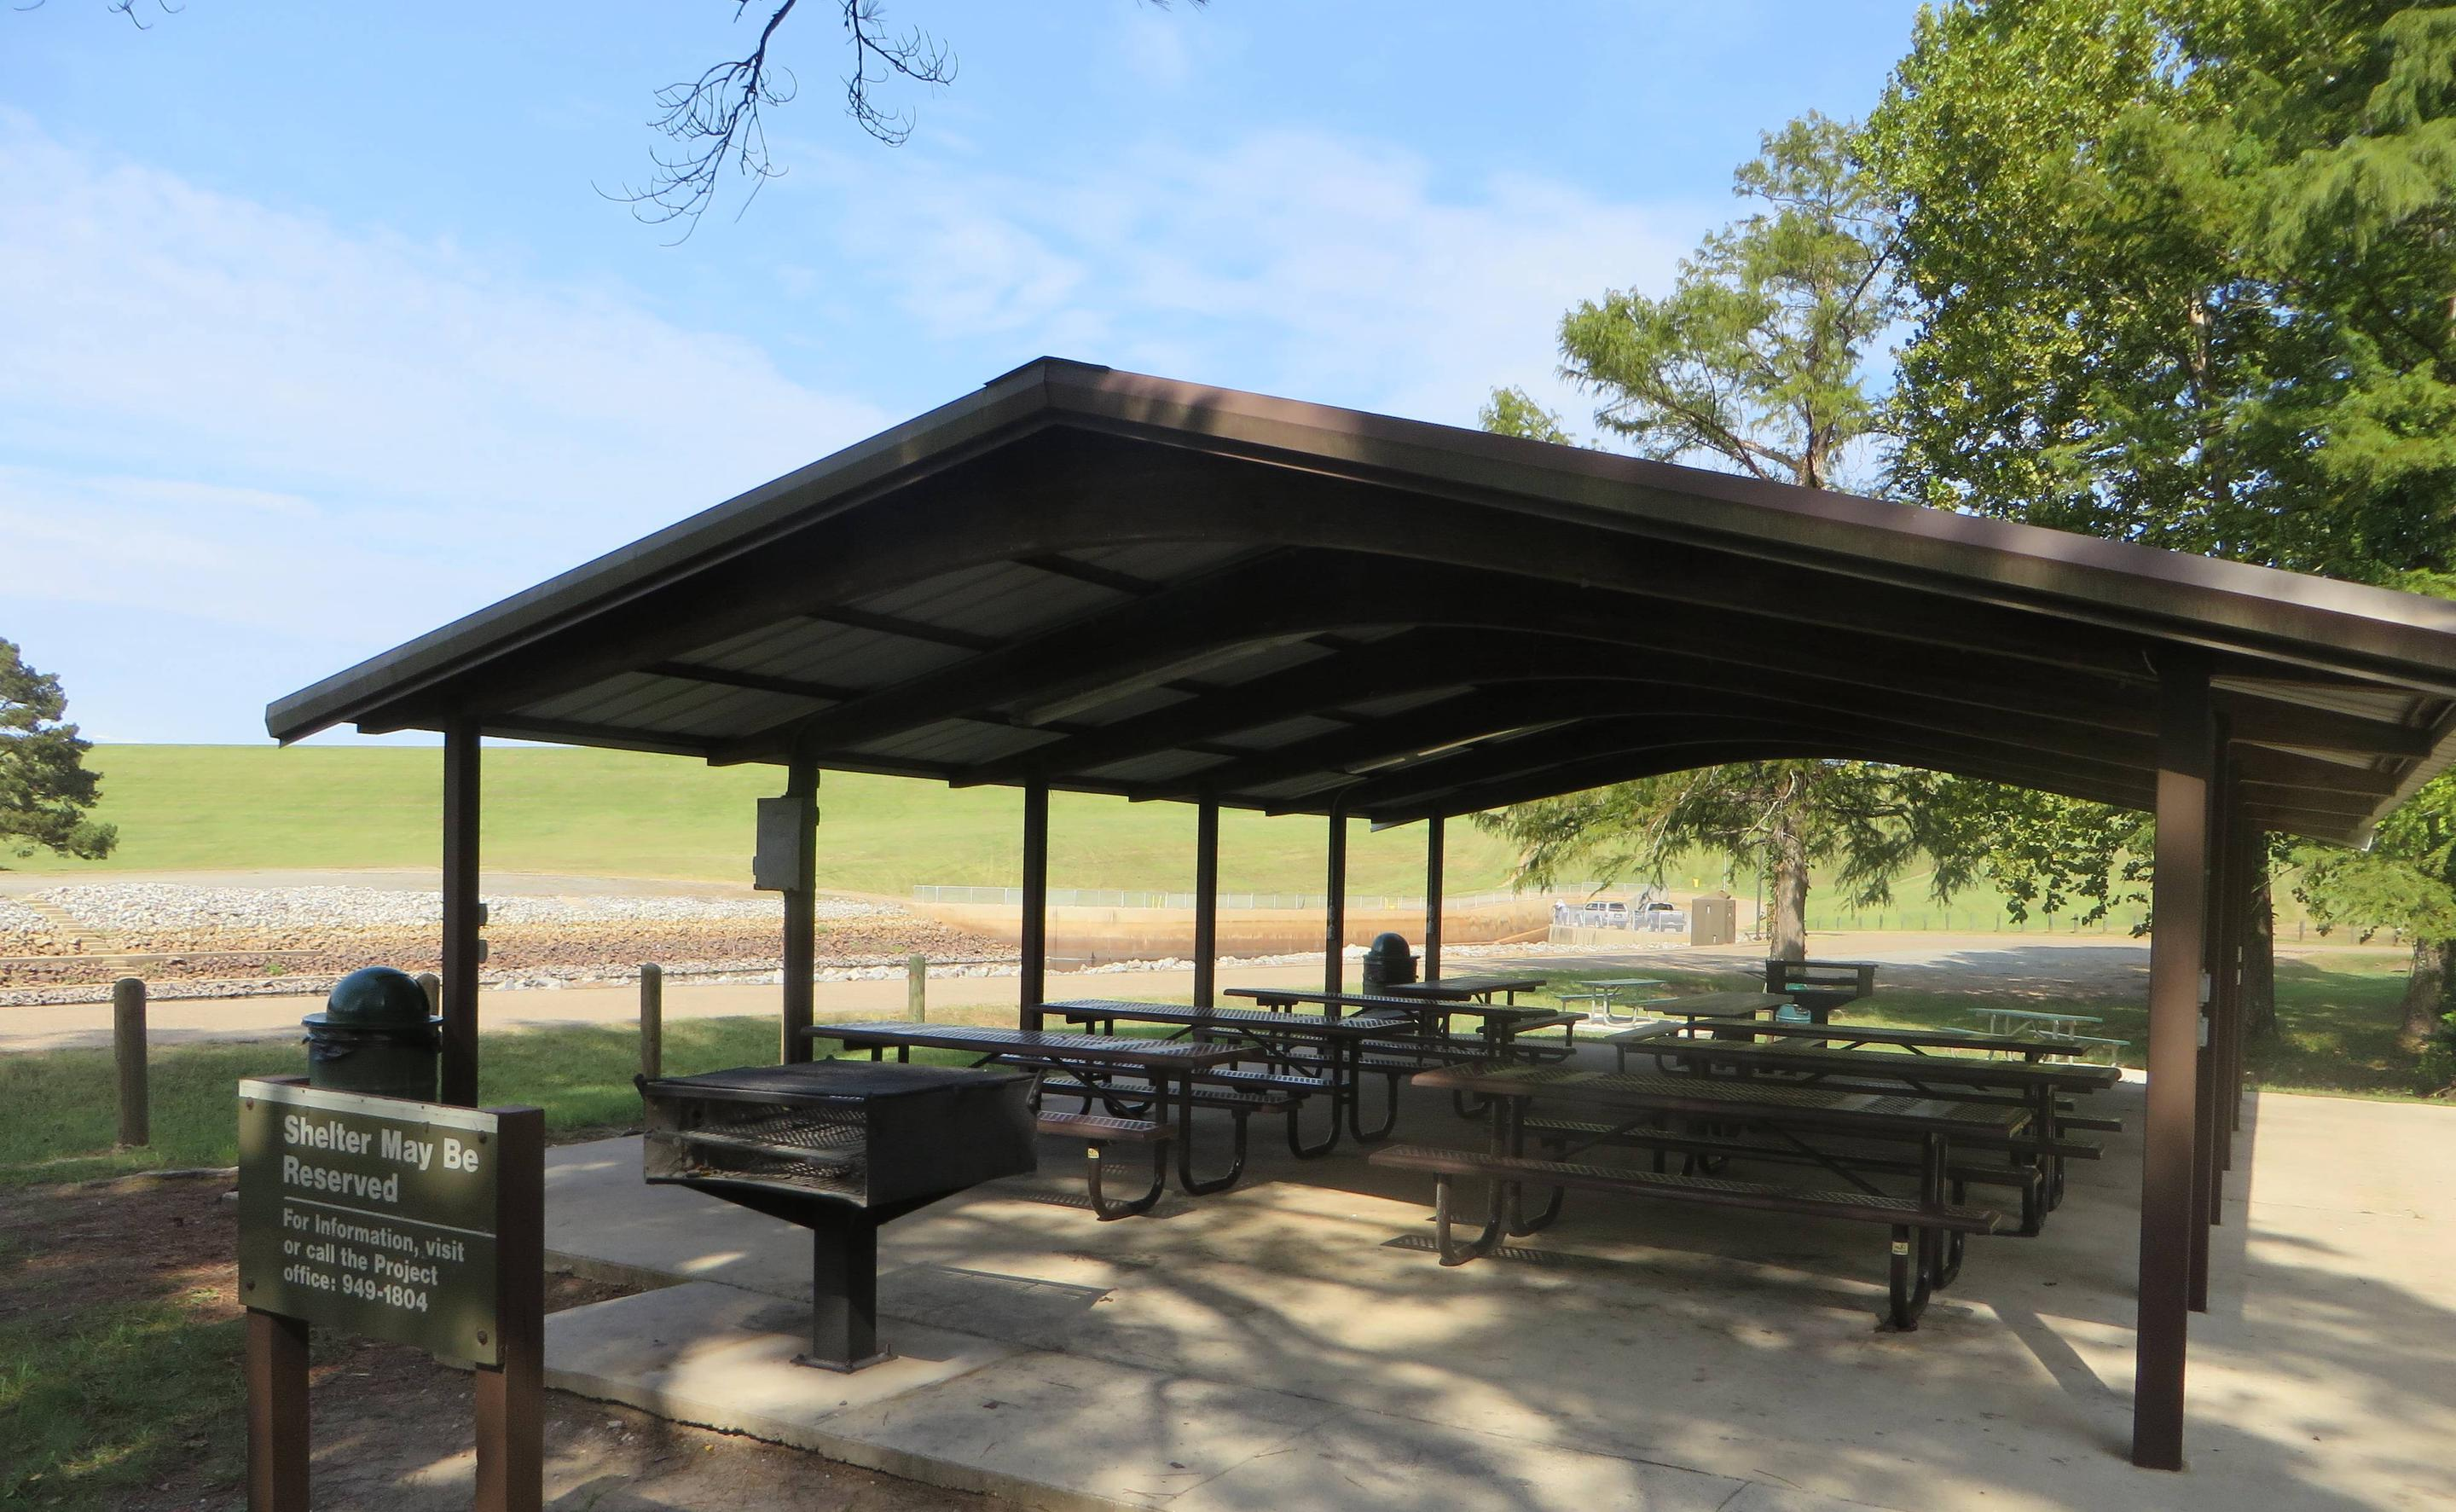 Picnic Shelter Available for RentThis picnic shelter is available in the Tom Merrill Recreation Area.  Pavilion fee is $50 a day and shelter reservations may be made by calling (318) 949-1804, or by reserving on recreation.gov. Pavilion can hold a maximum capacity of 75 people. Located within walking distance of the comfort stations and the outlet channel.